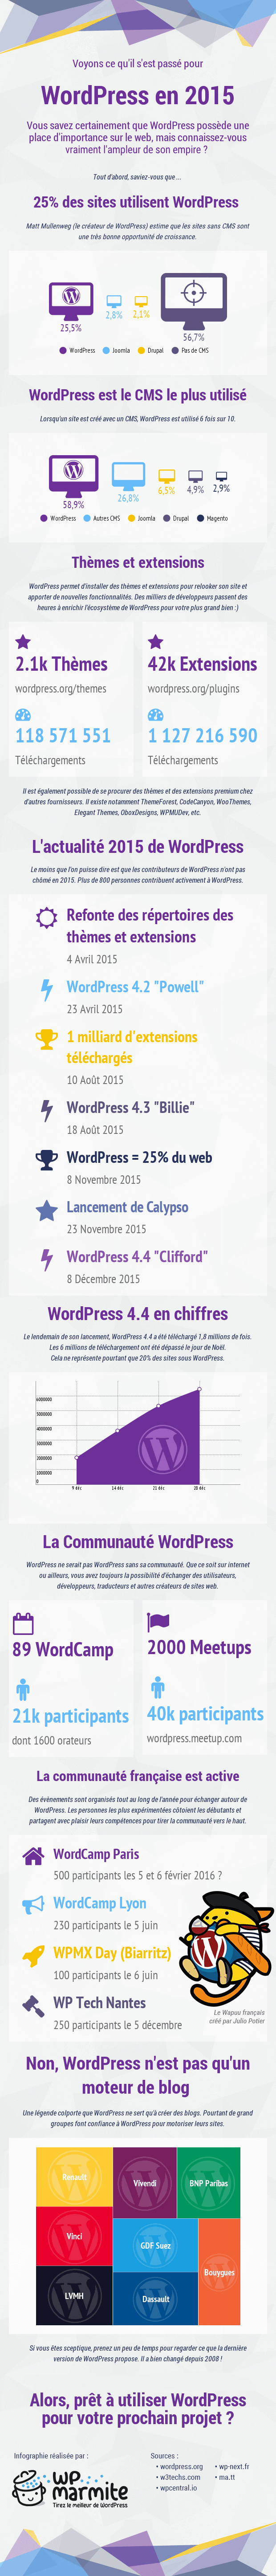 Infographie WordPress 2015 par WP Marmite